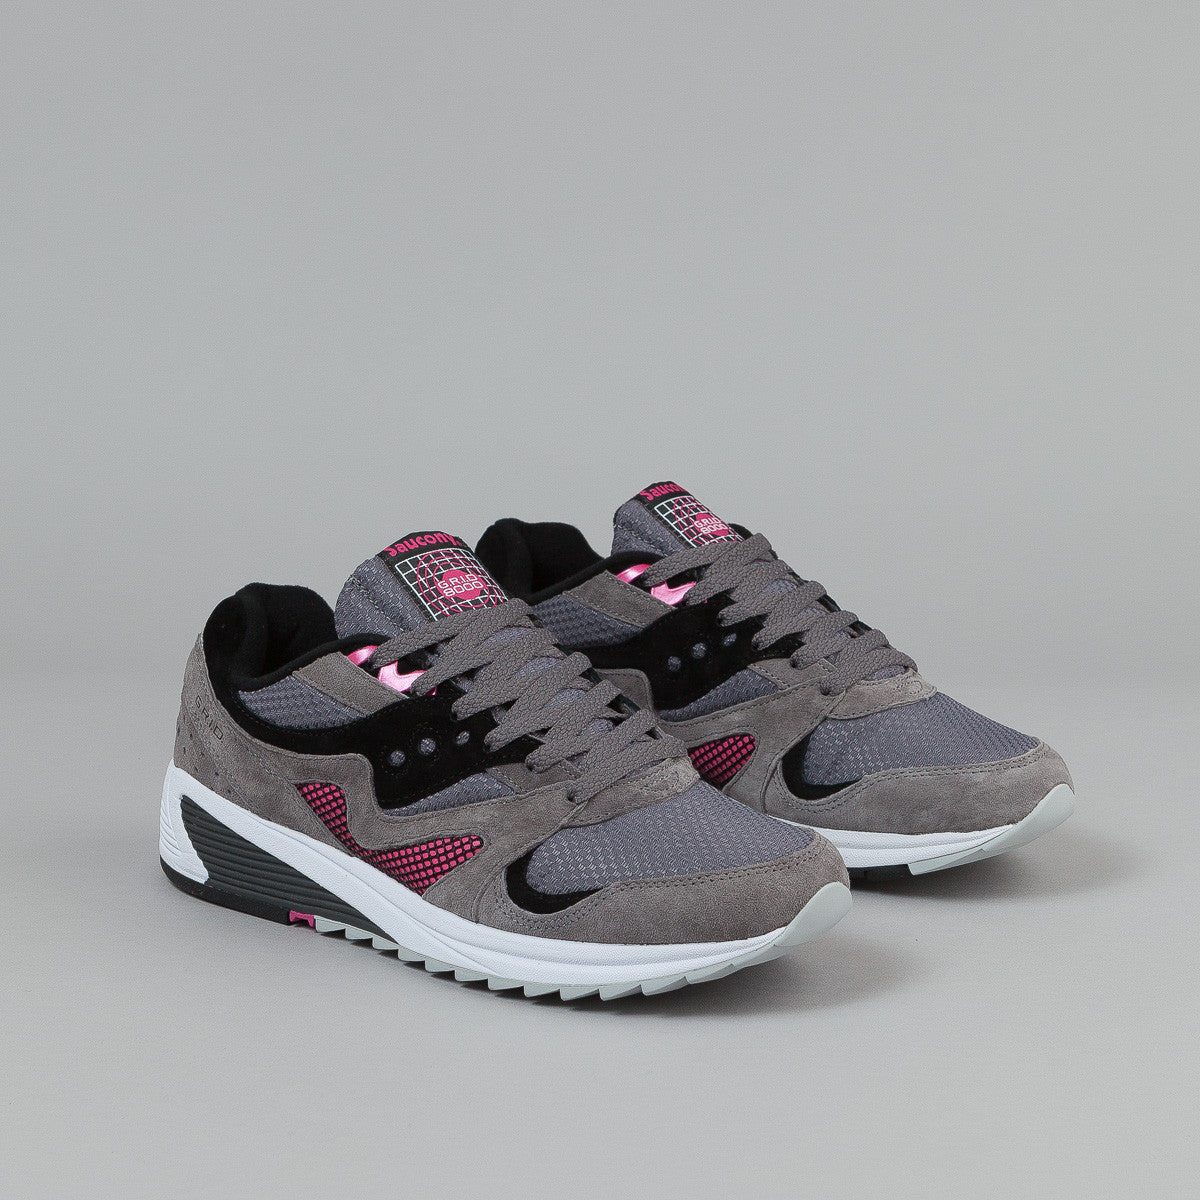 Saucony Grid 8000 CL Shoes - Charcoal / Grey